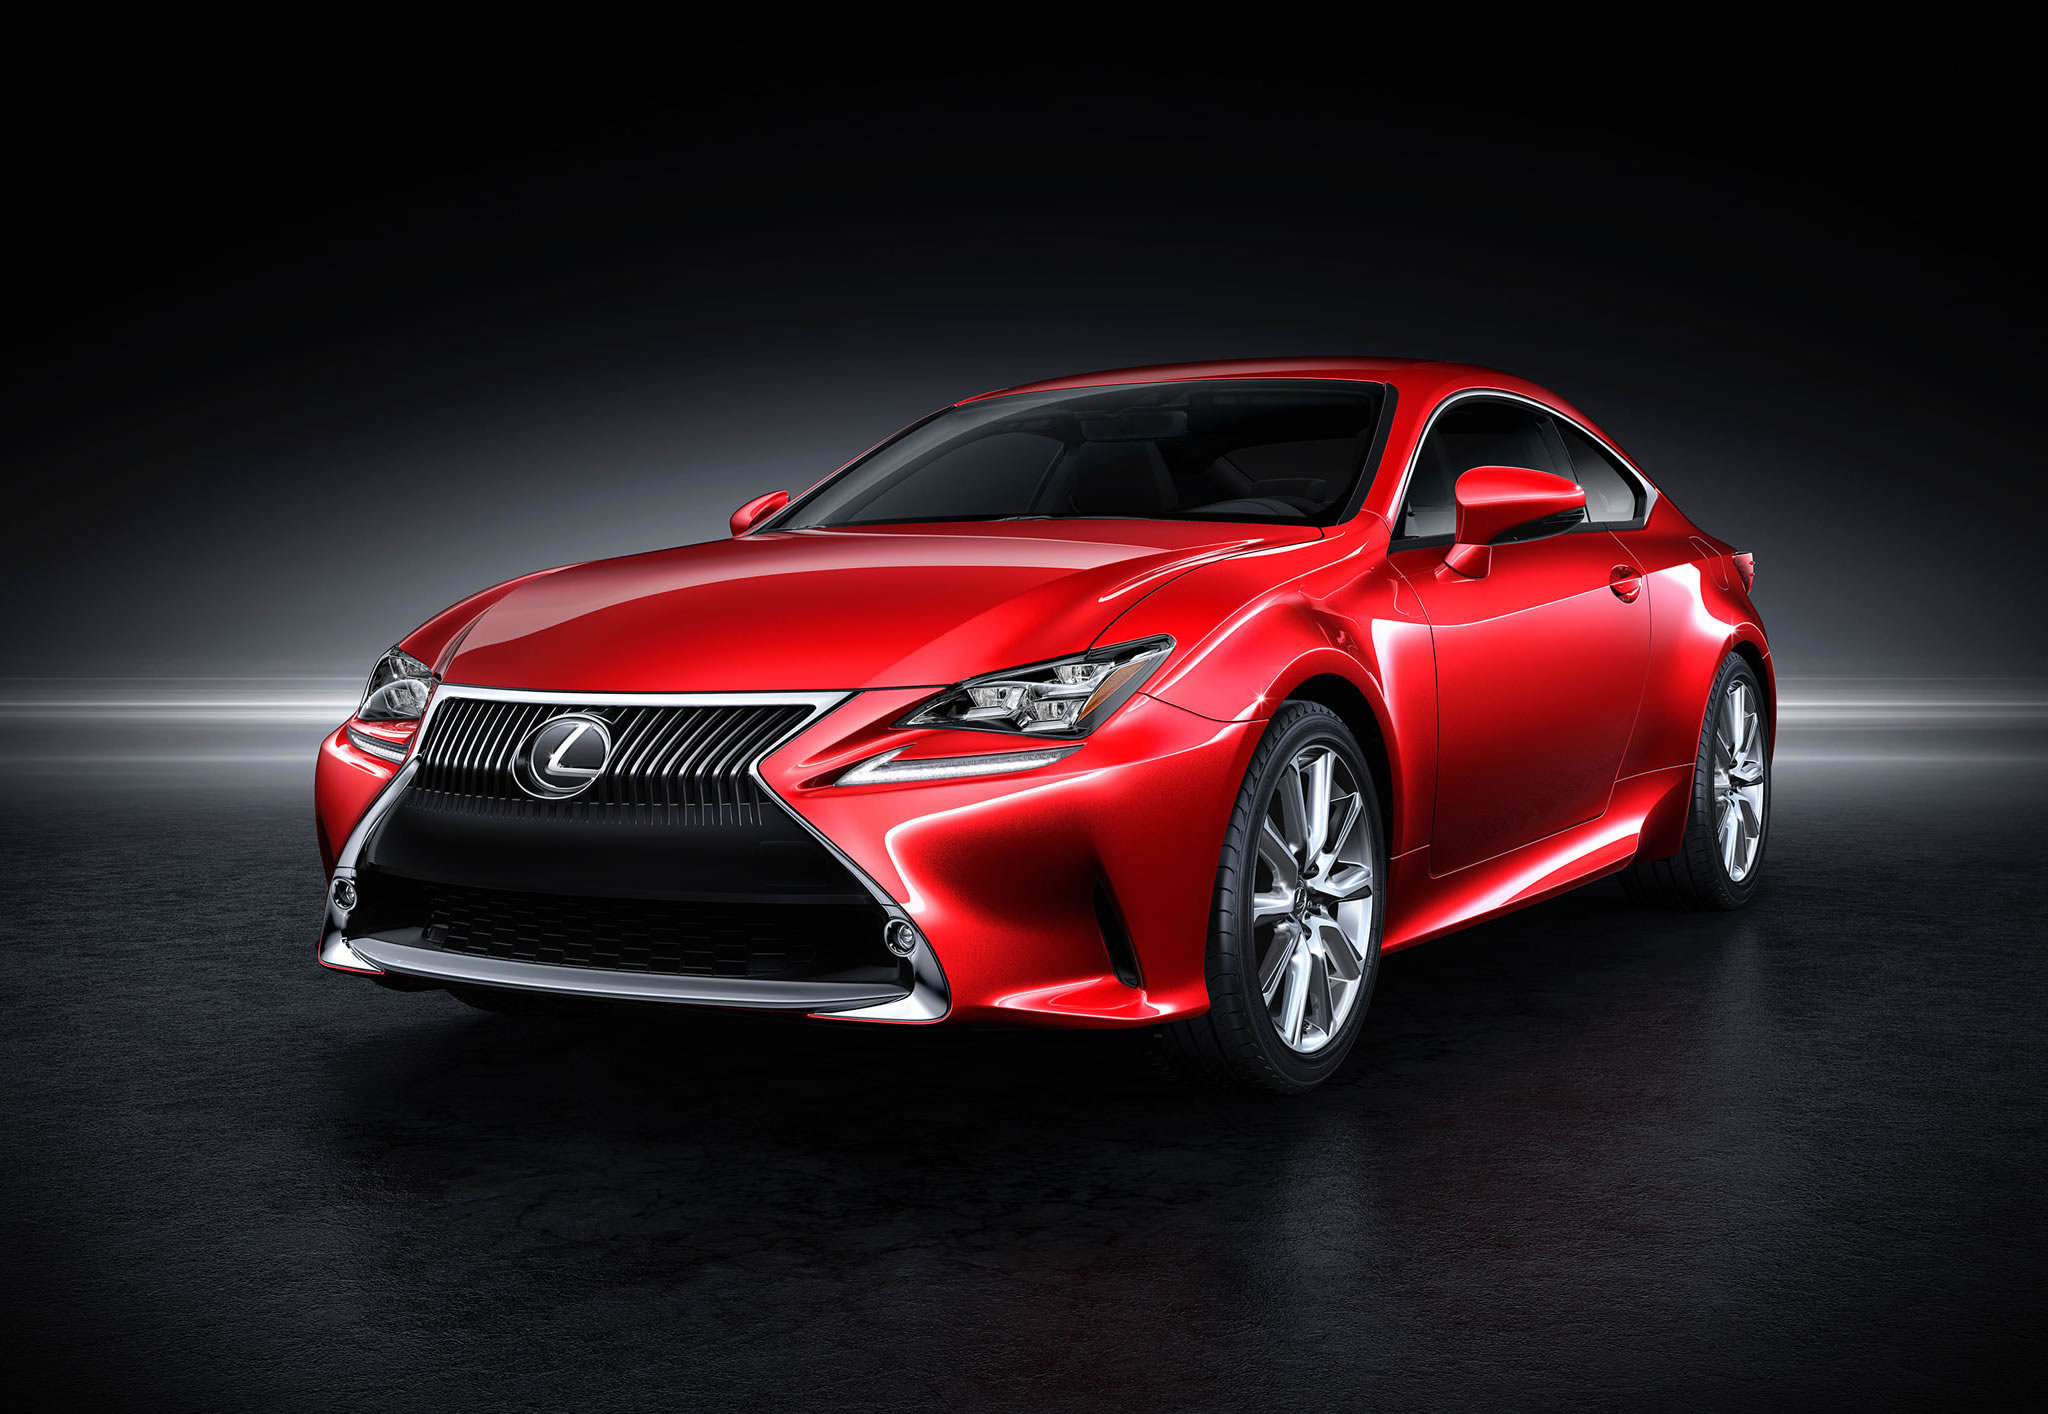 2015 lexus rc 350 coupe front photo infrared exterior. Black Bedroom Furniture Sets. Home Design Ideas